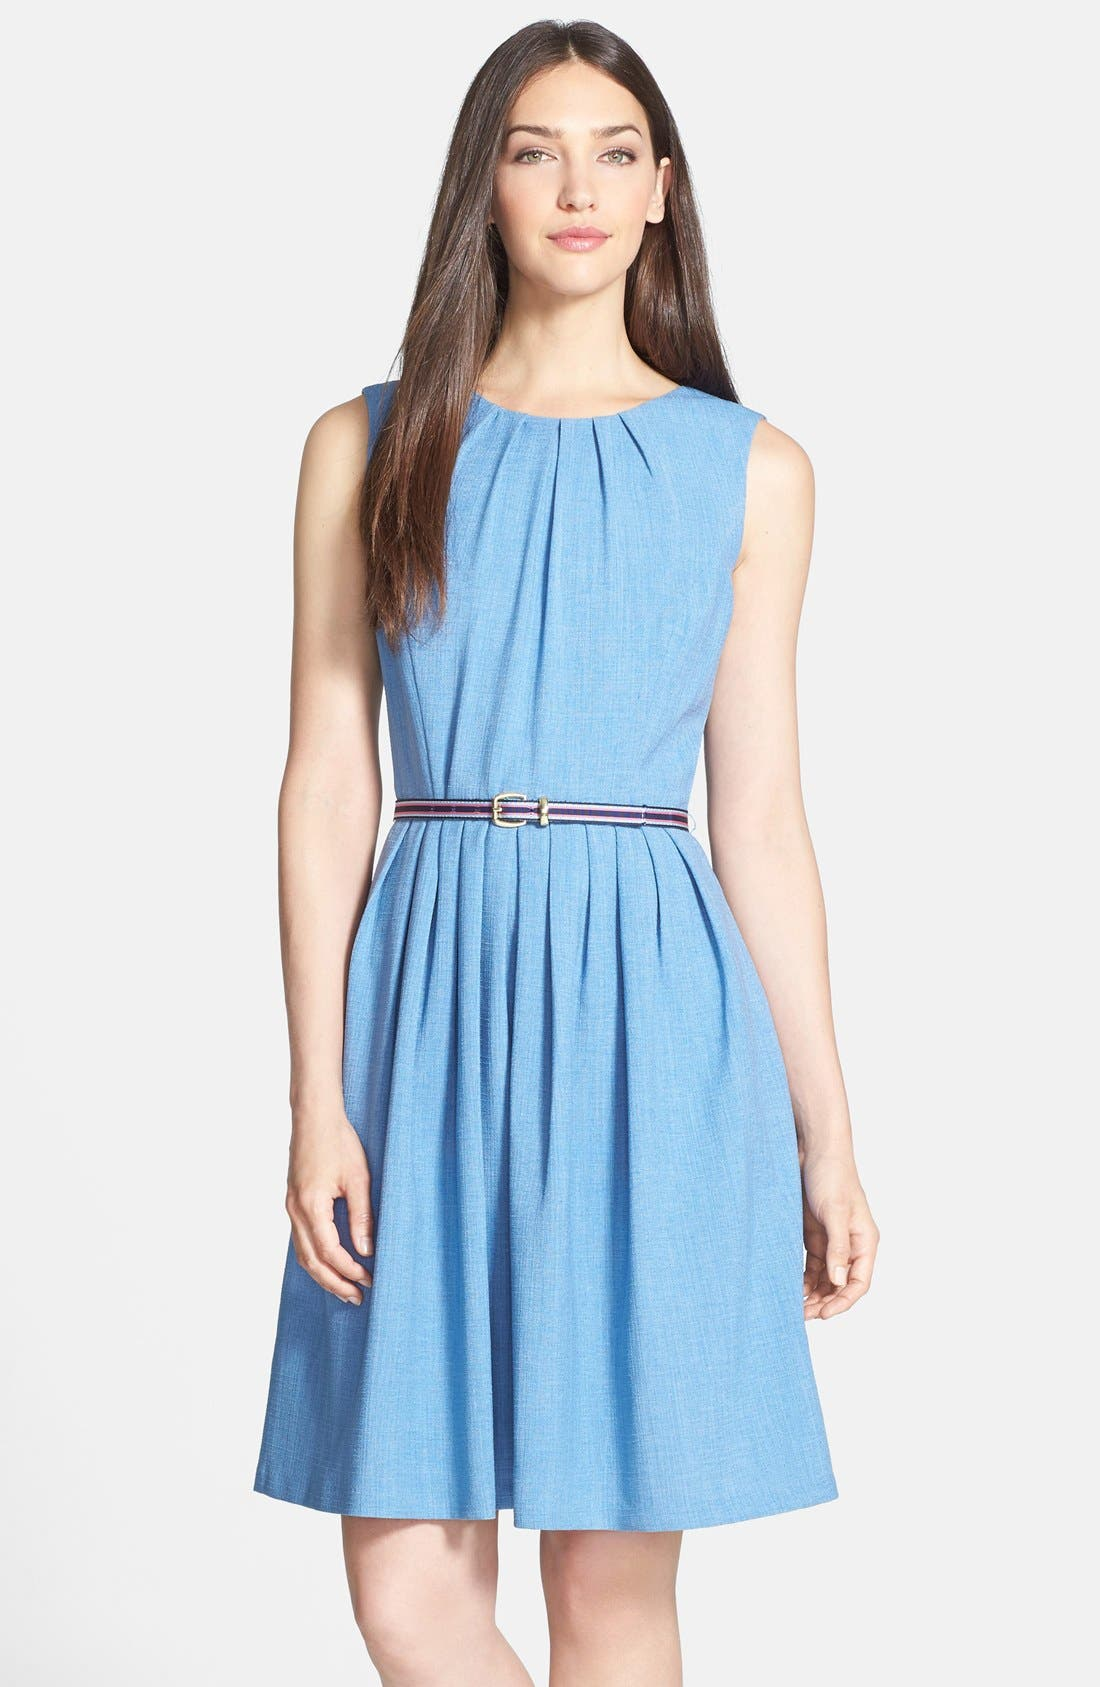 Alternate Image 1 Selected - Ellen Tracy Belted Fit & Flare Dress (Petite)